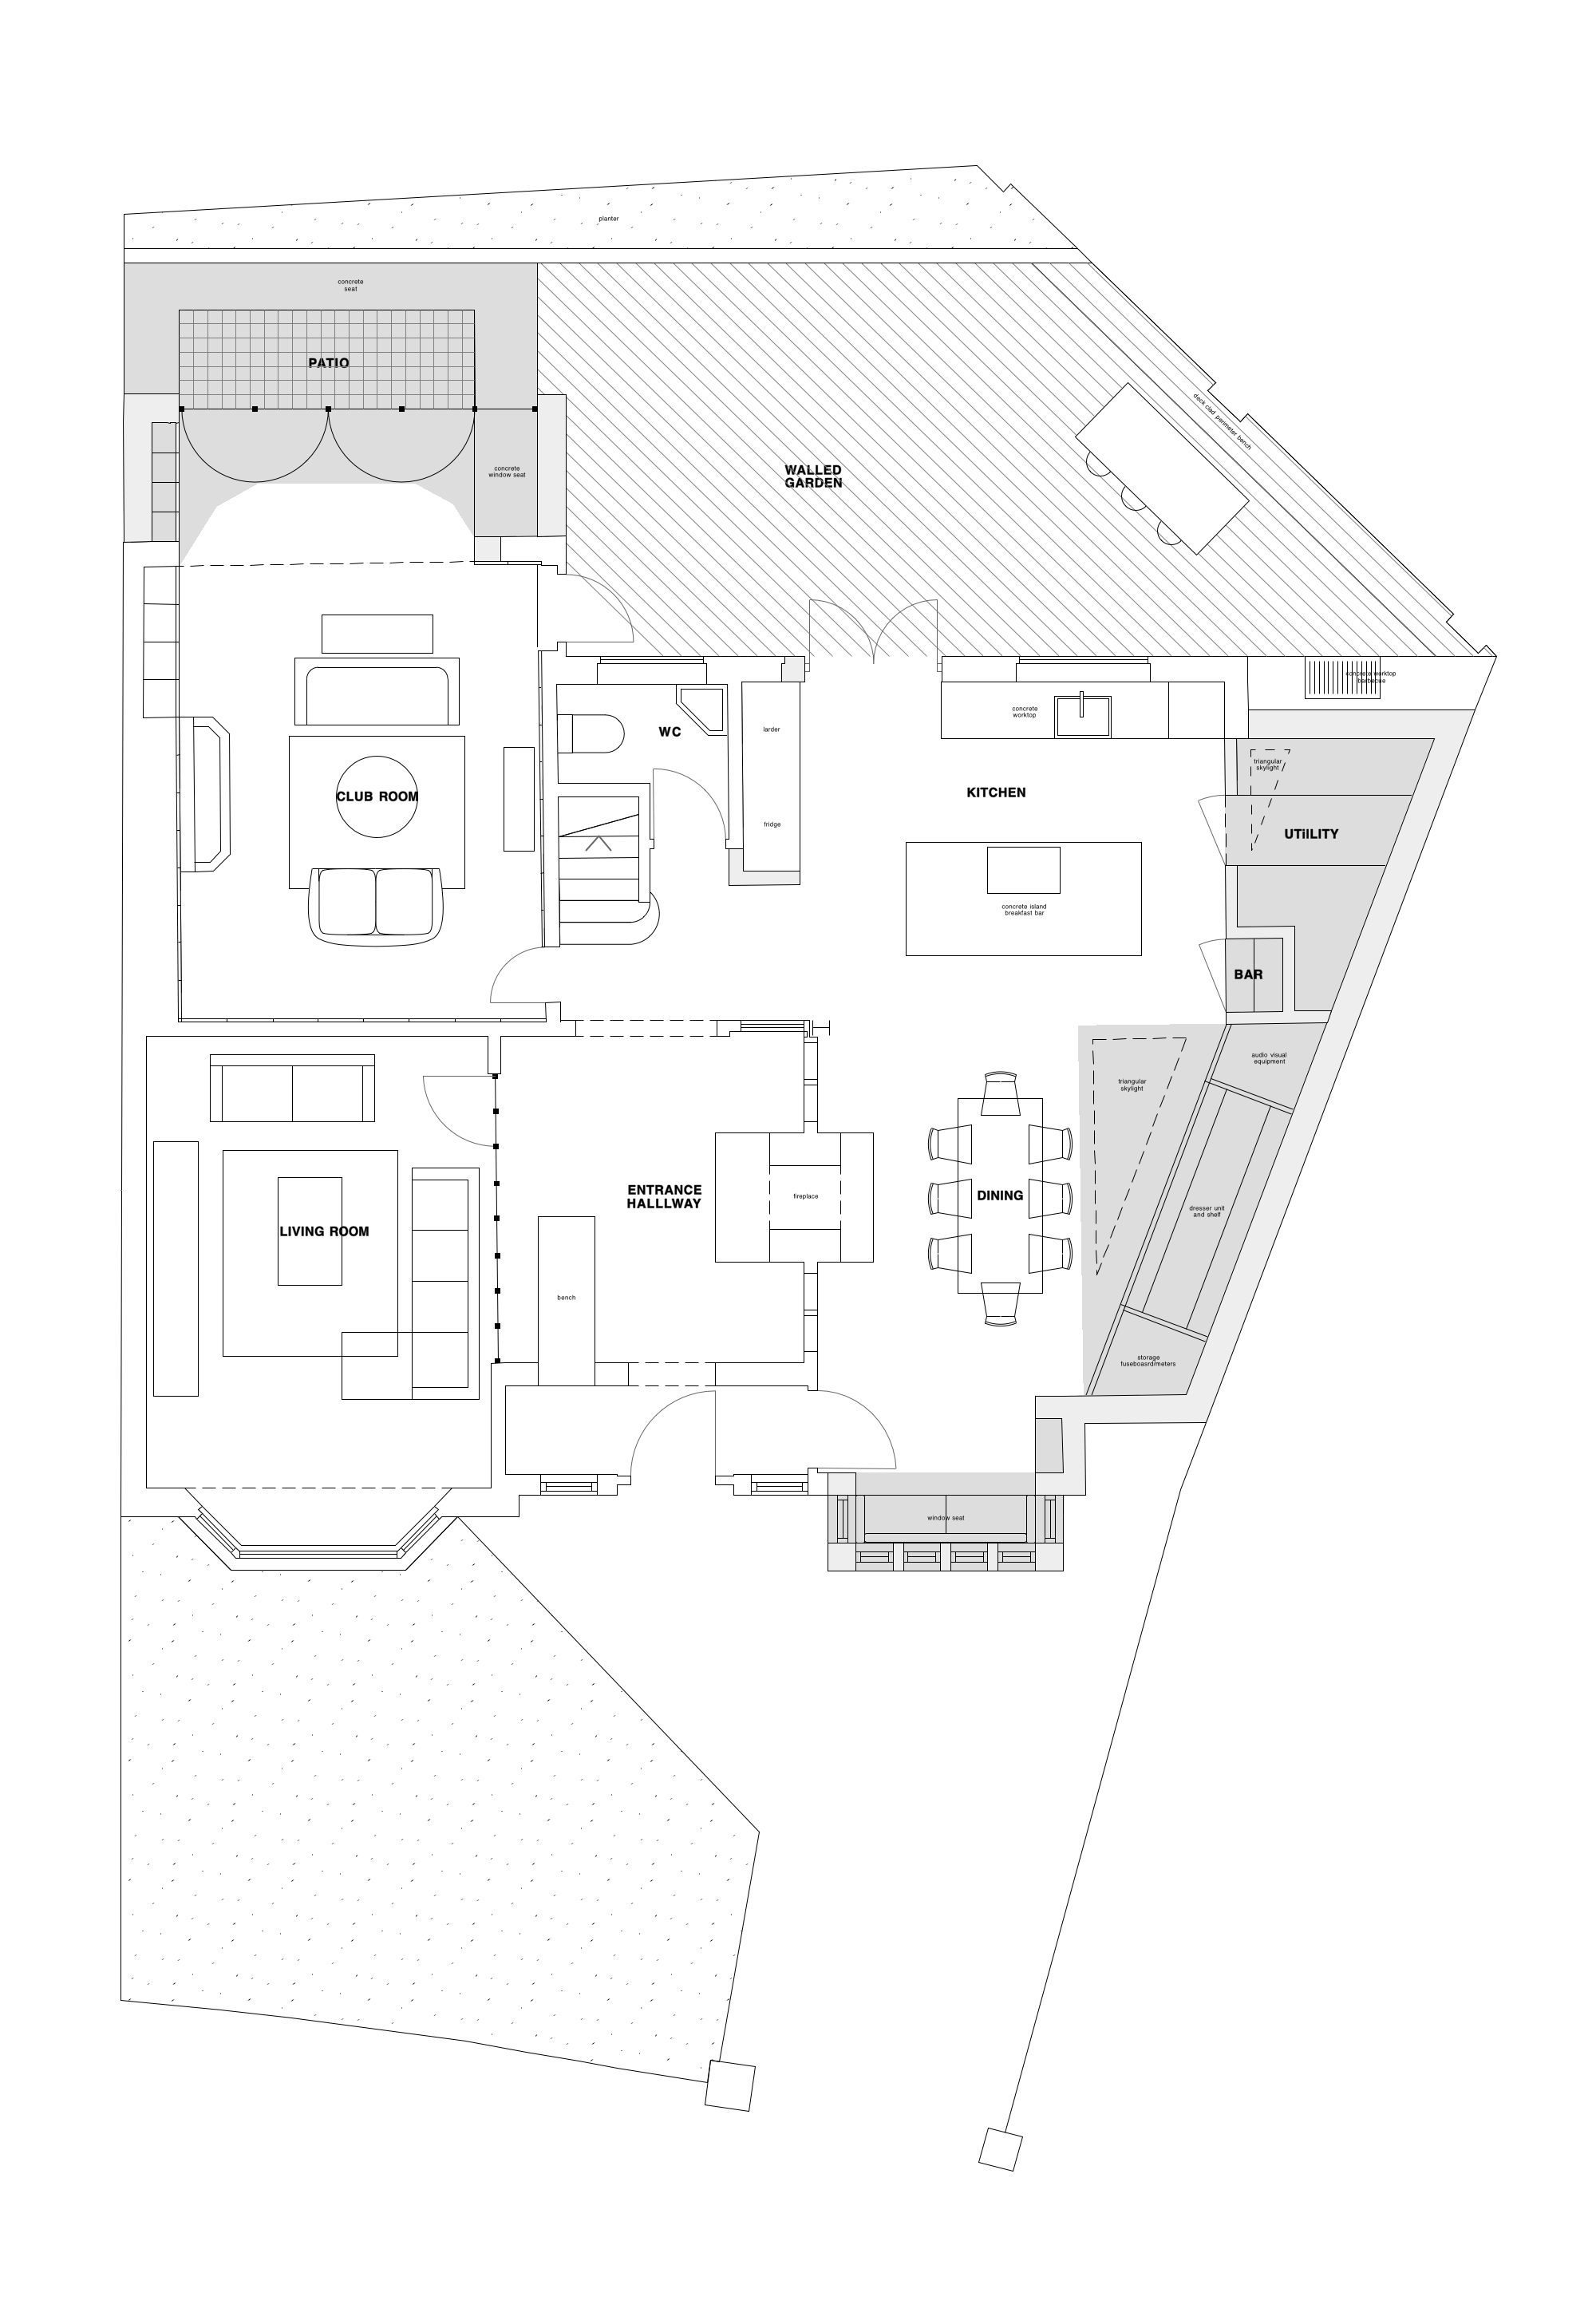 Proposed Ground Floor Plans (additions in grey)